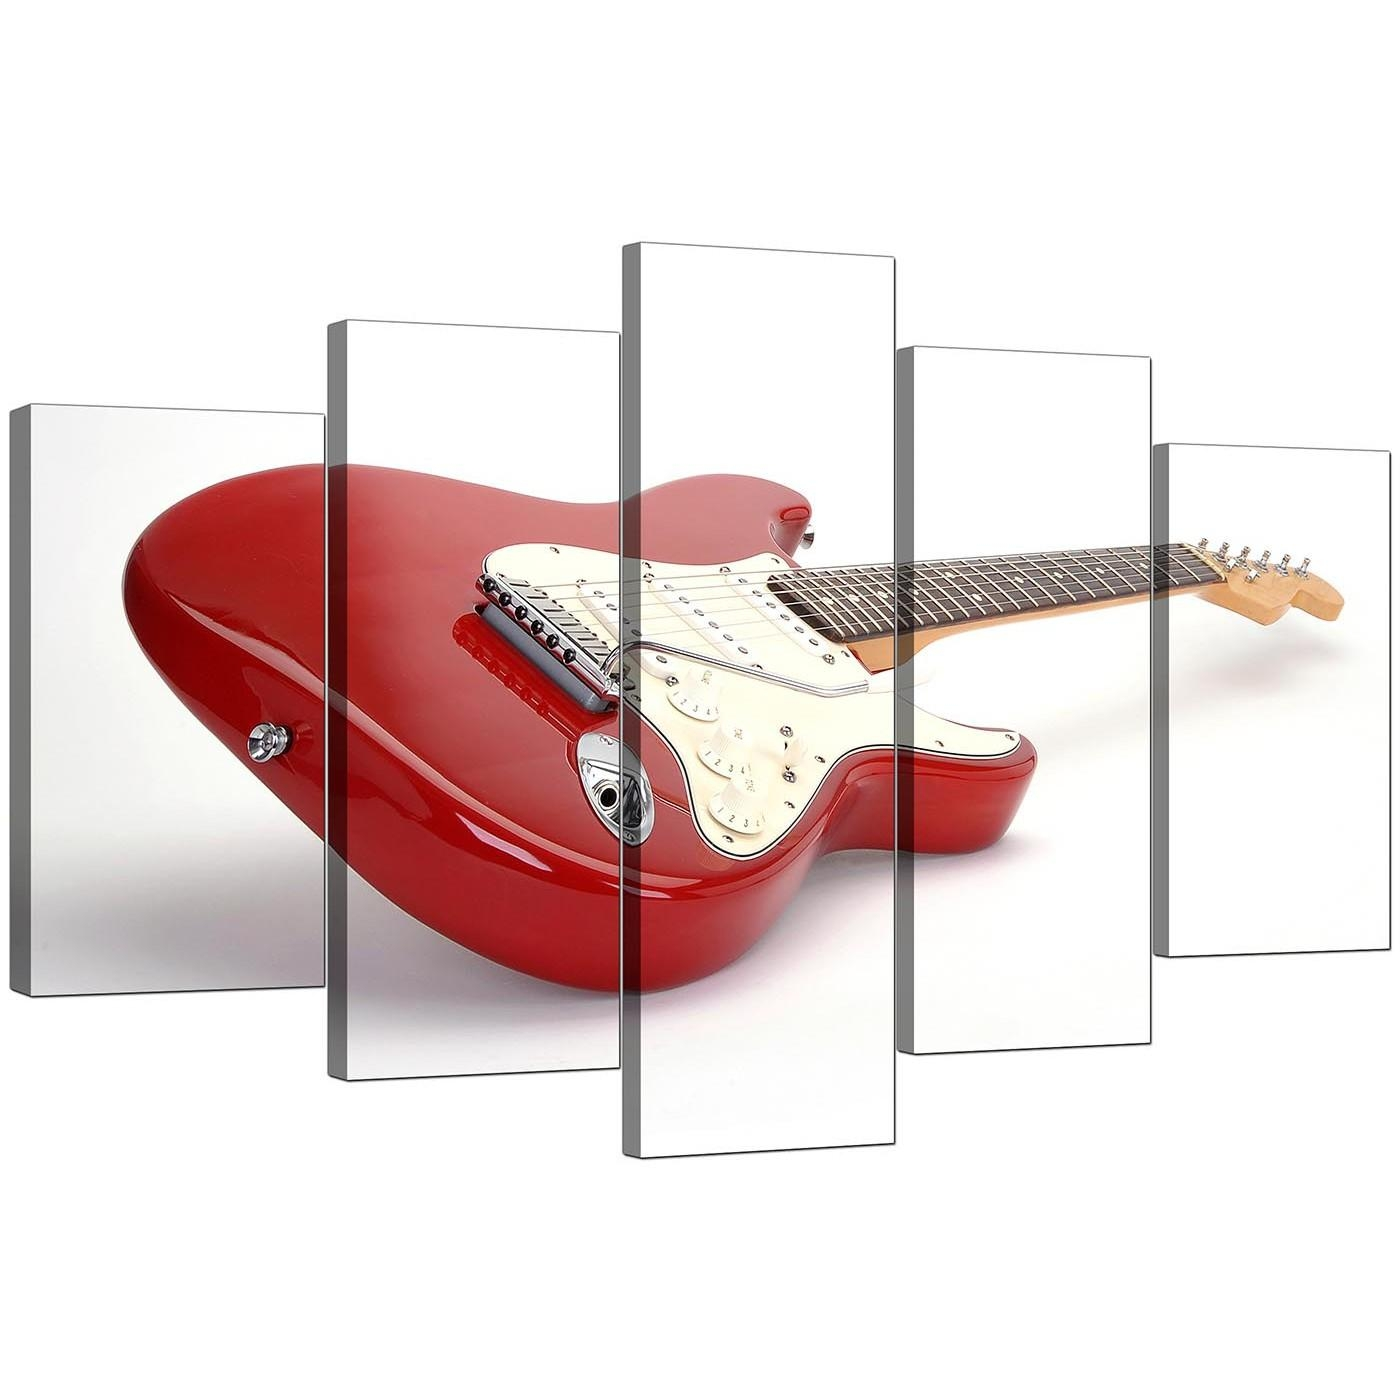 Extra Large Guitar Canvas Wall Art 5 Panel In Red For Guitar Canvas Wall Art (Image 8 of 20)